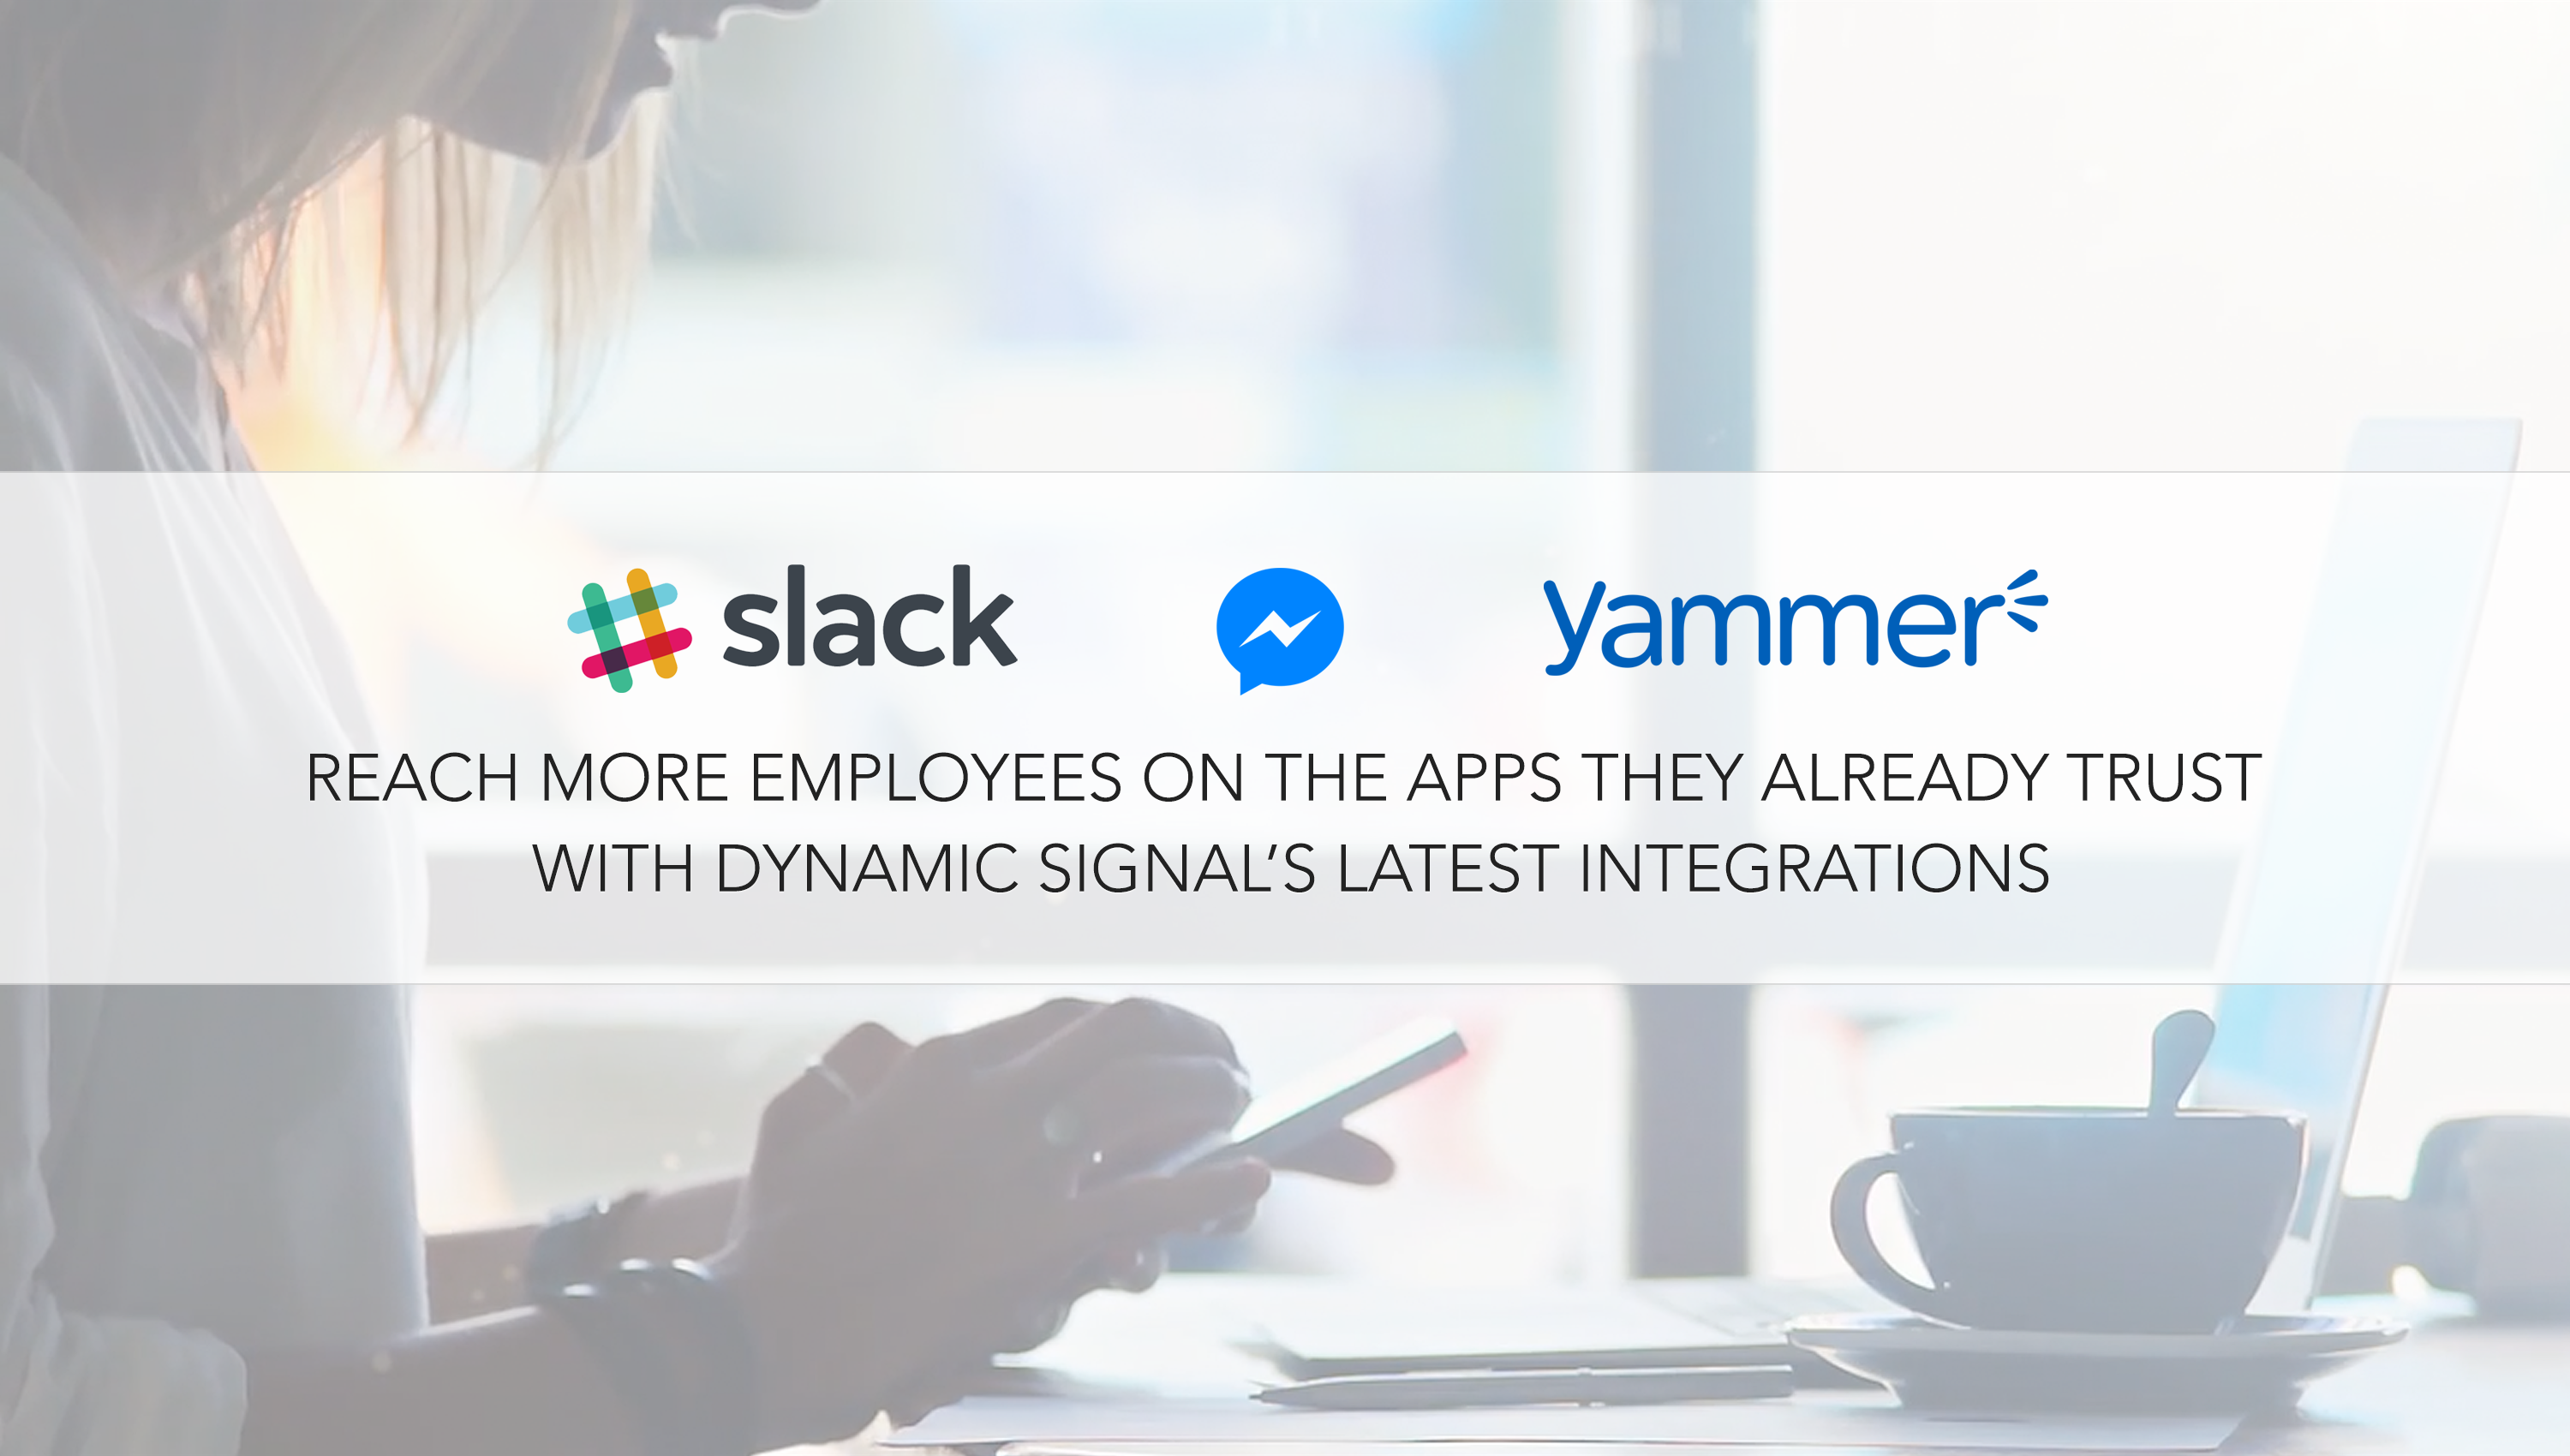 Announcing Three New Integrations To Help Companies Reach Employees On Facebook Messenger Slack And Microsoft Yammer